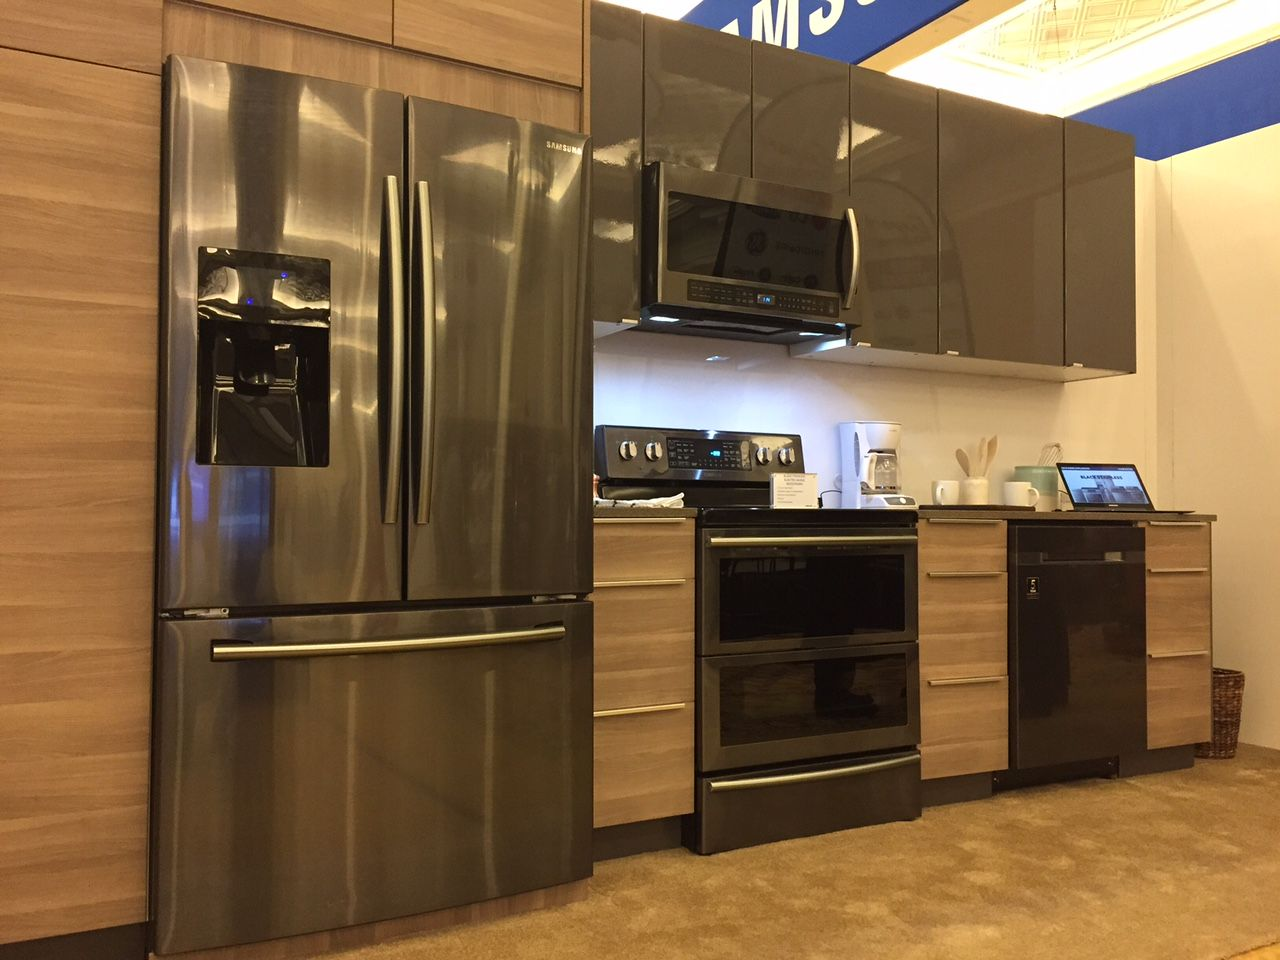 Black Stainless Steel Kitchen Appliances  Durable And Less Smudging!